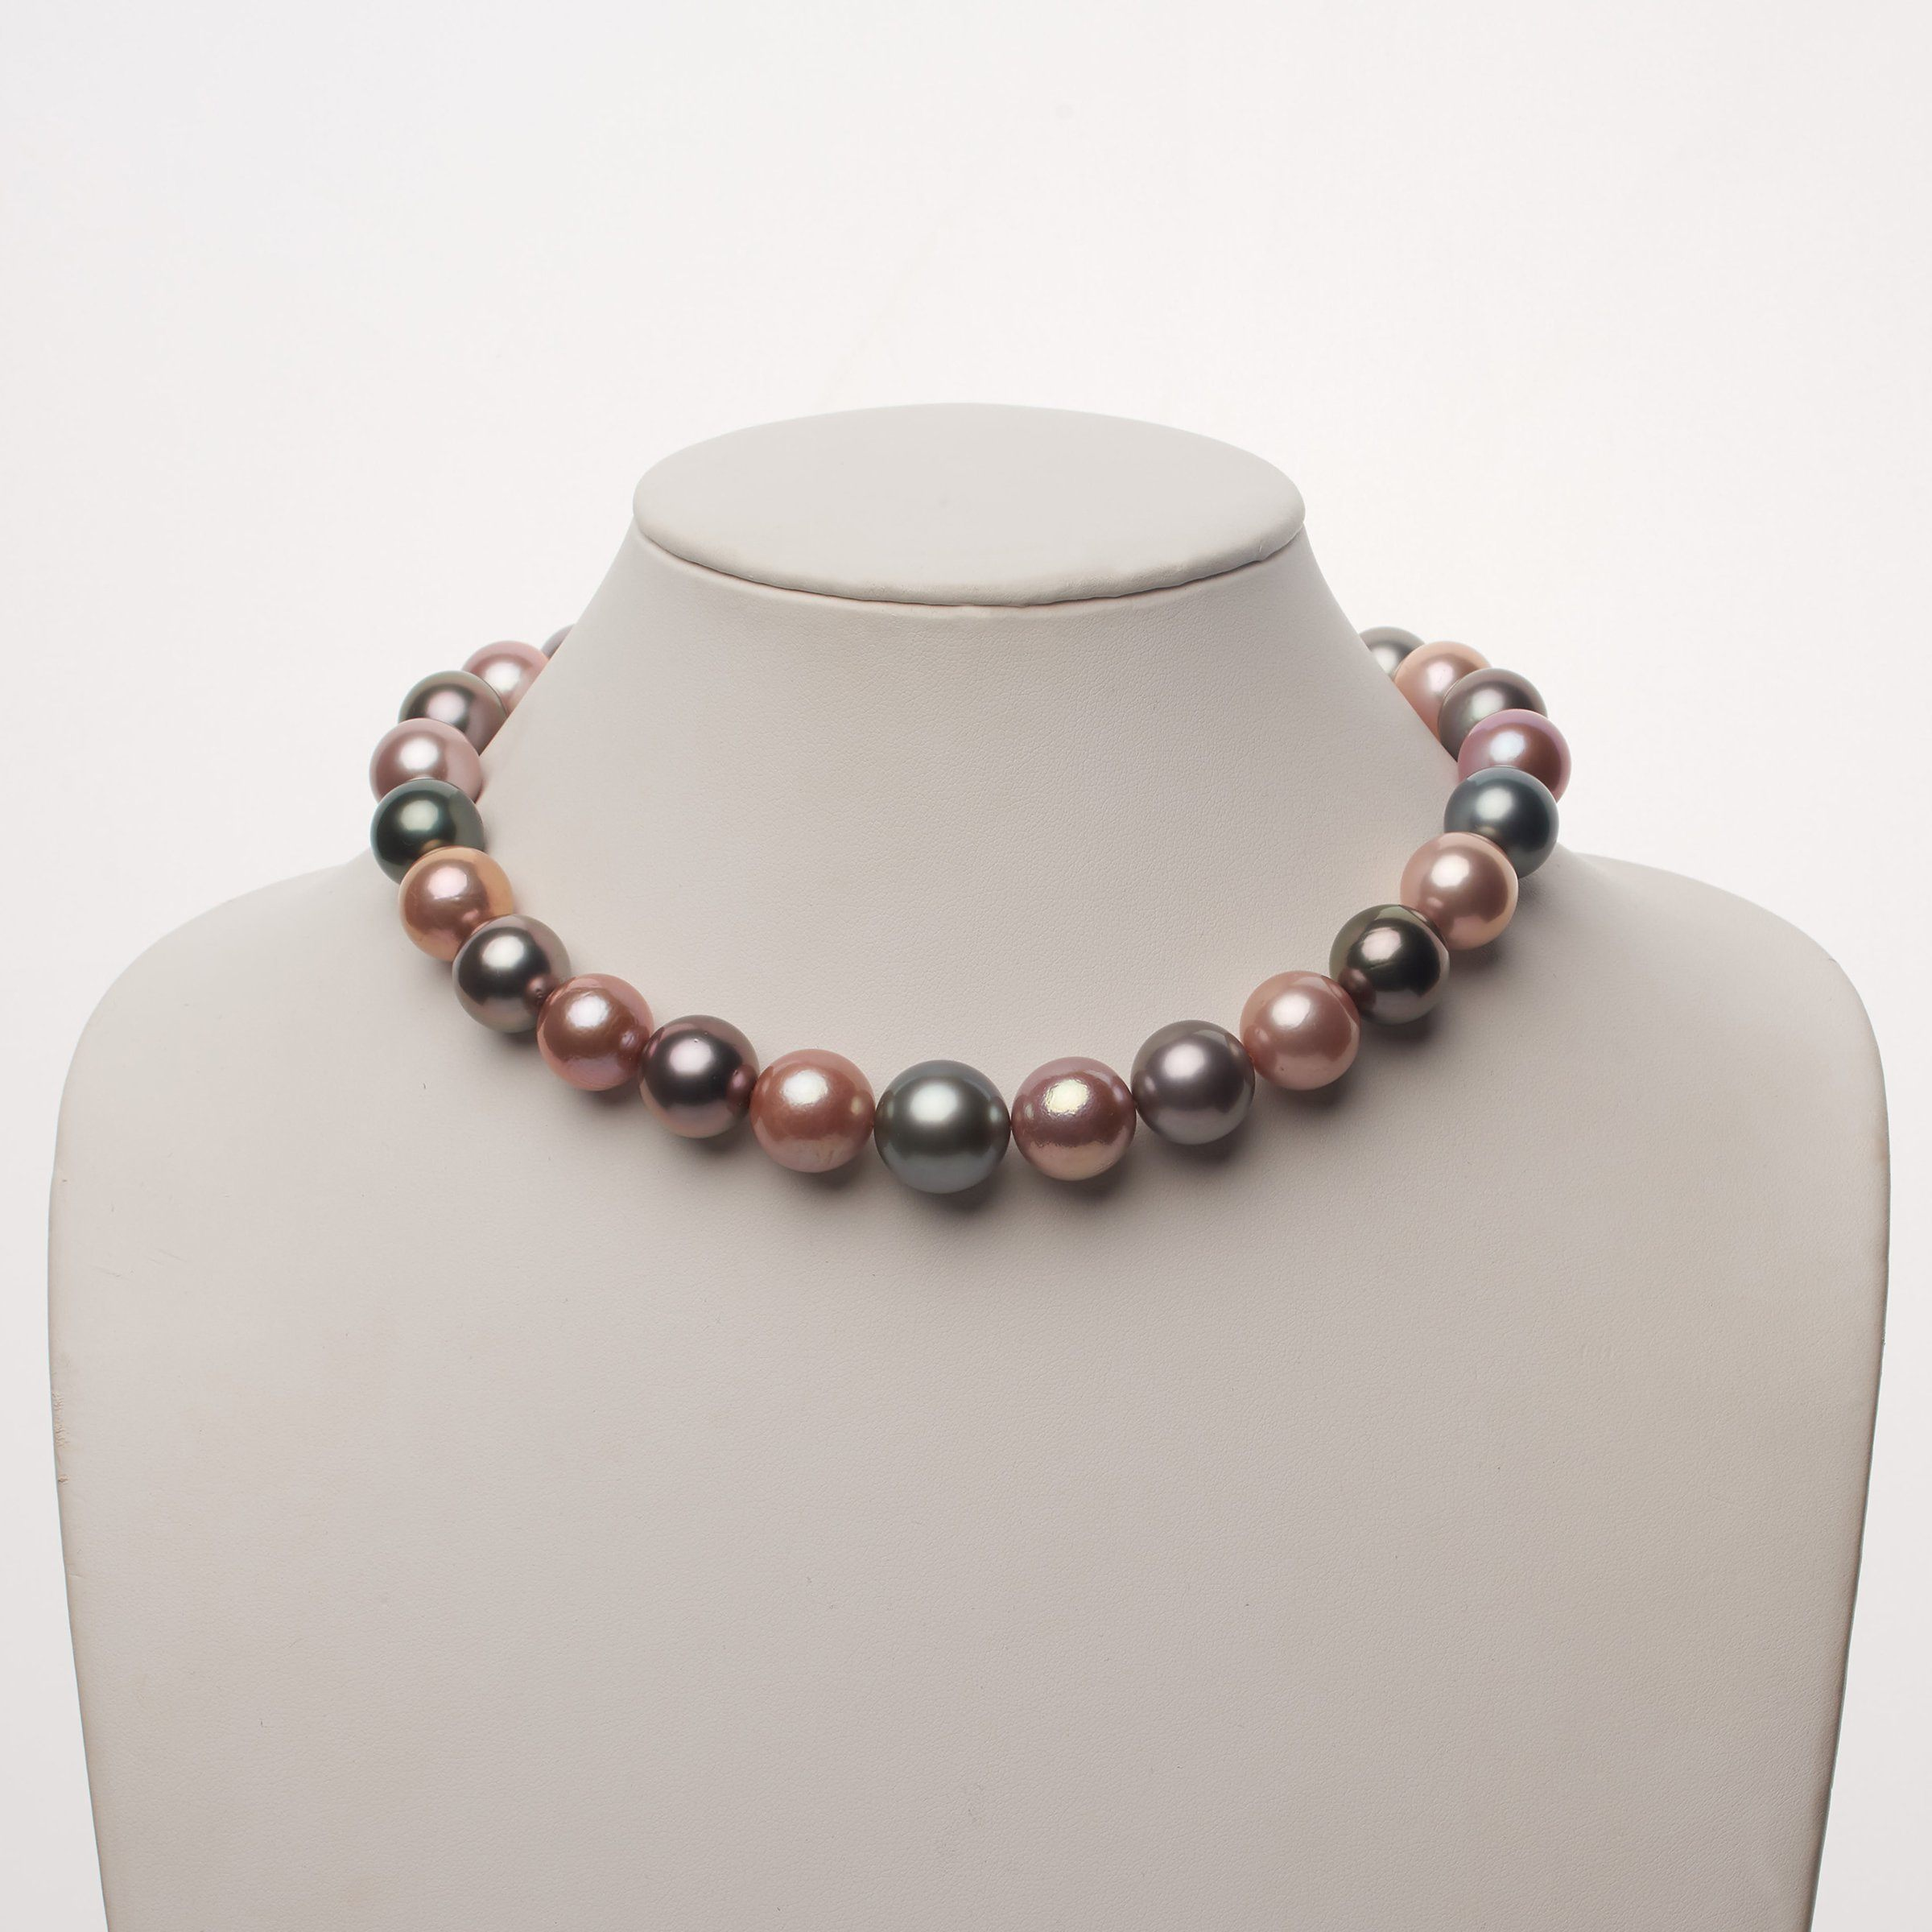 15.2-16.8 mm AAA Multicolored Round Pearl Necklace